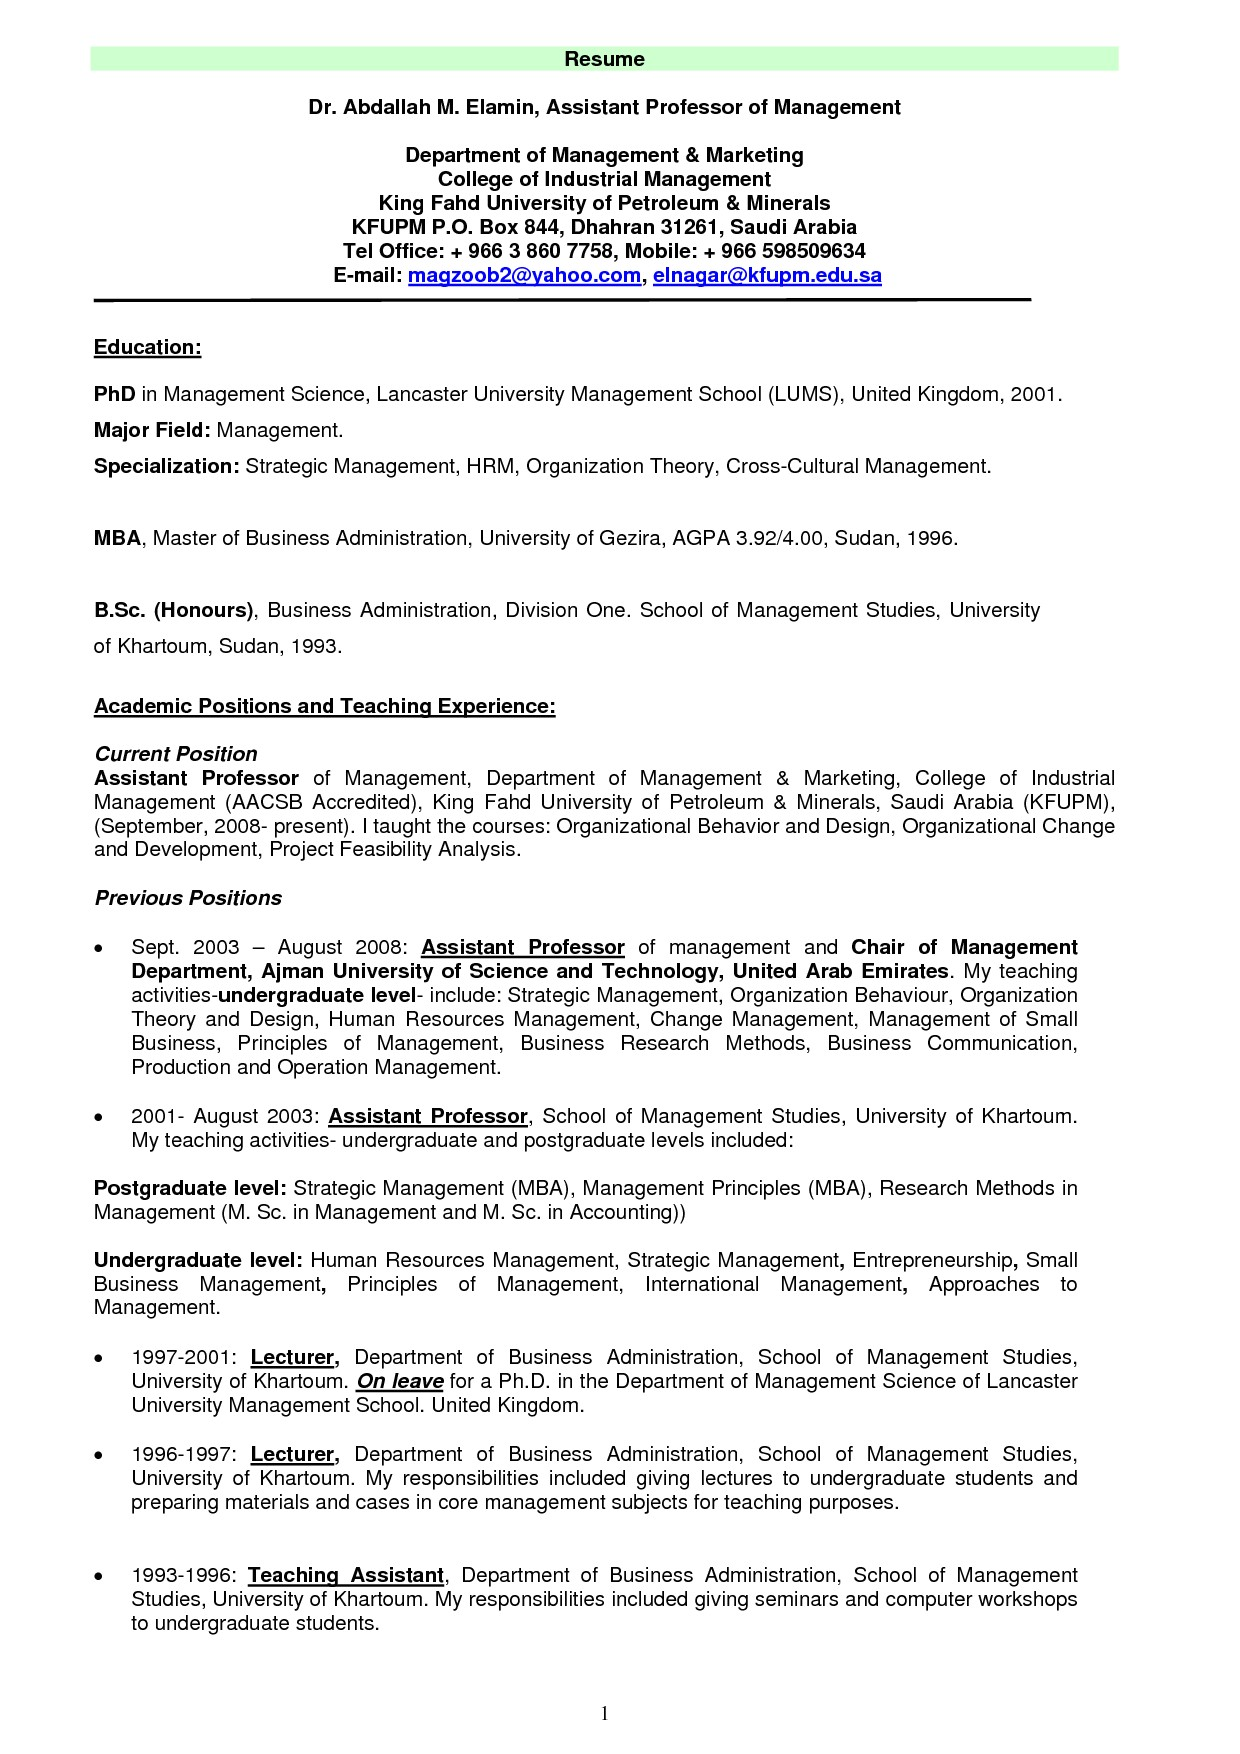 Resume Samples for Faculty Positions Resume Examples for College Teachers Music Teacher Piano